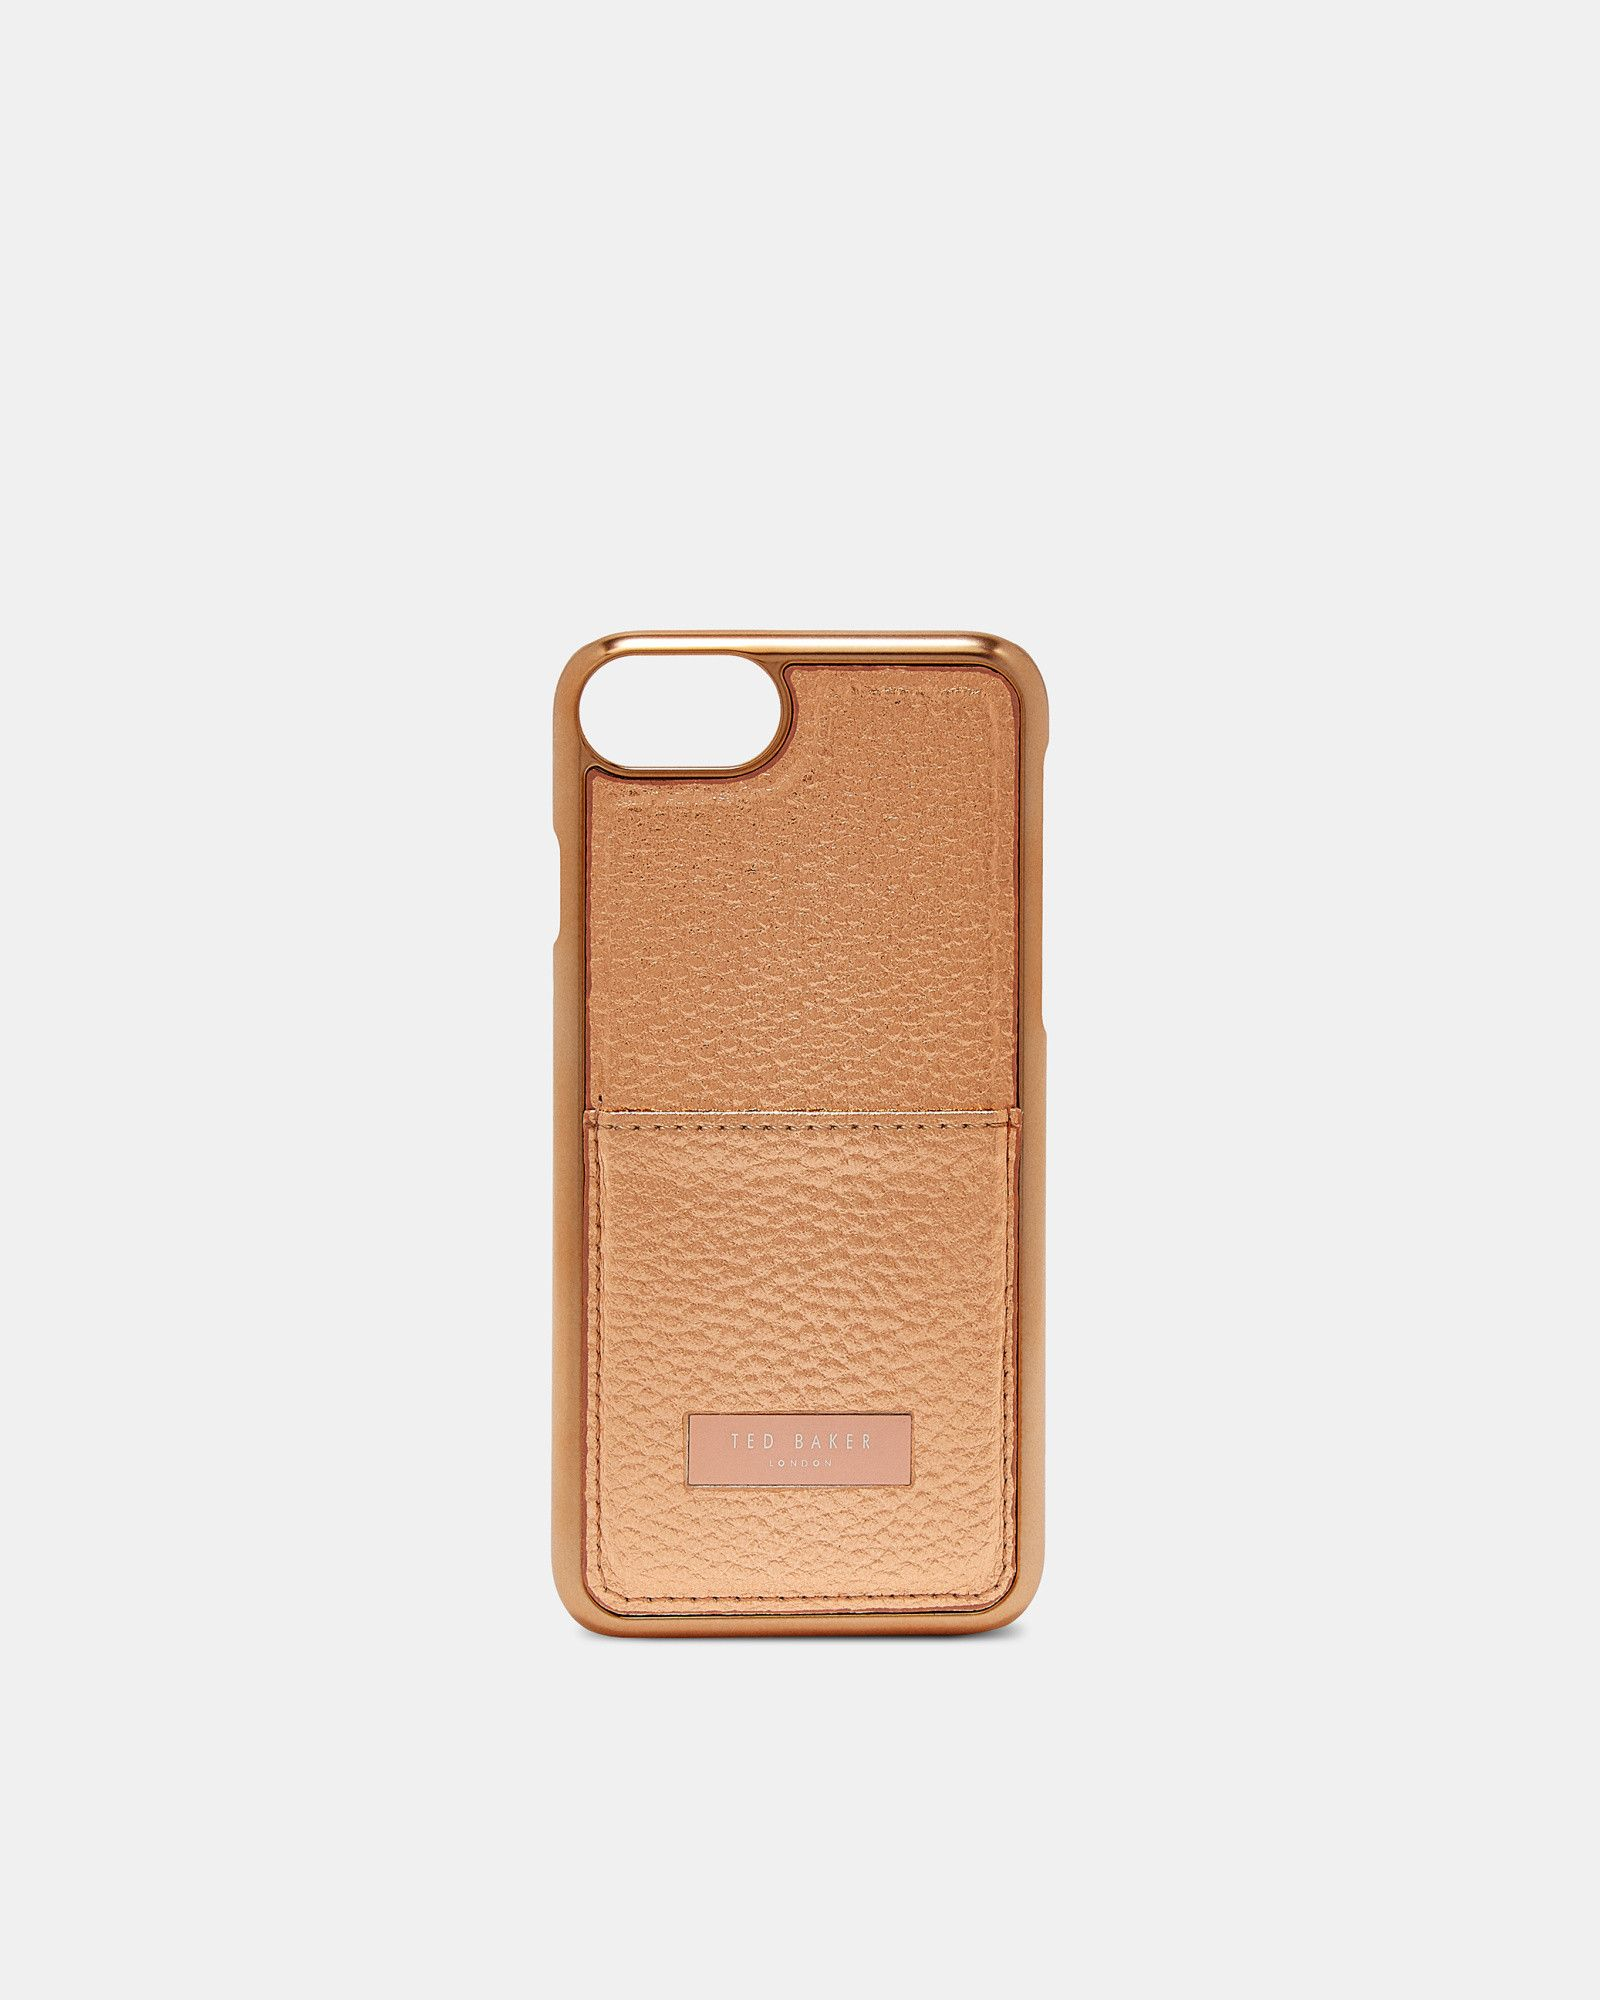 548d9a5e34ebc Ted Baker Cardholder iPhone 6/6s/7/8 case Rose Gold | Products ...